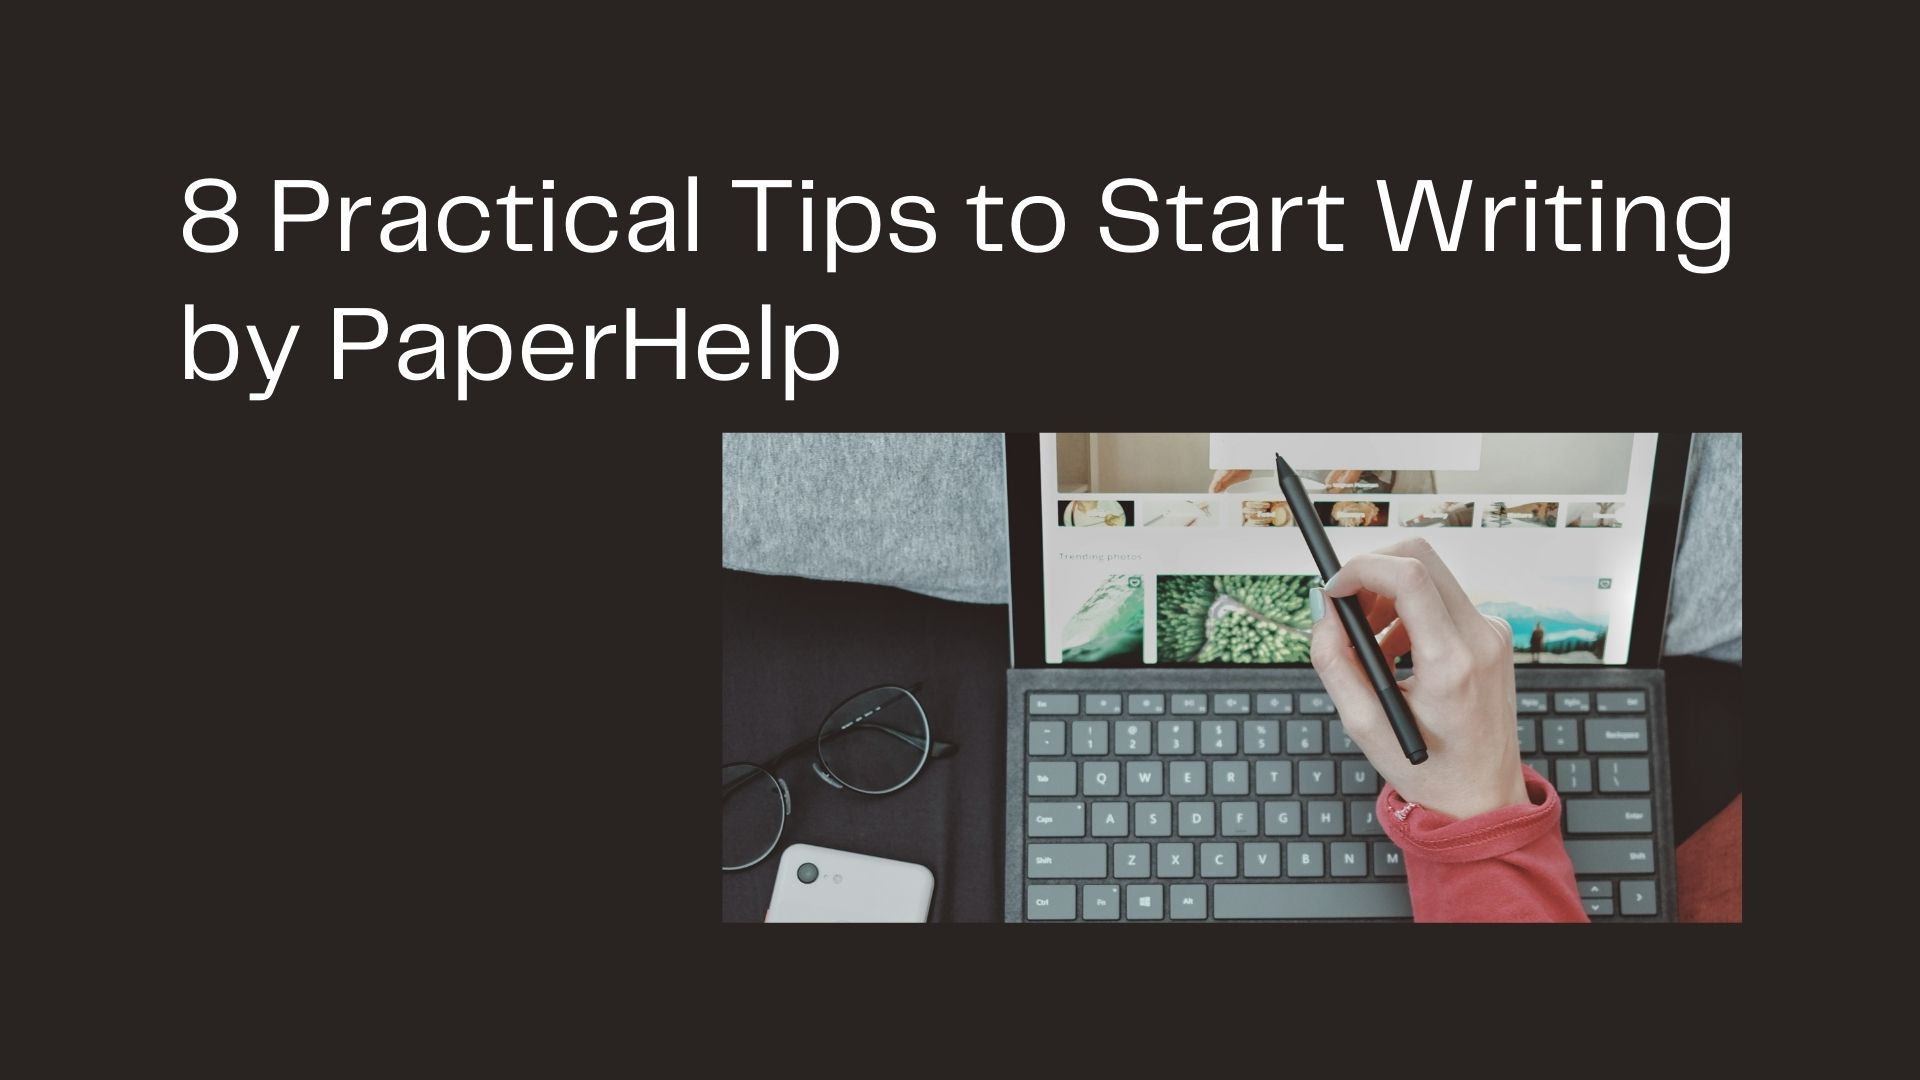 8 Practical Tips to Start Writing by PaperHelp